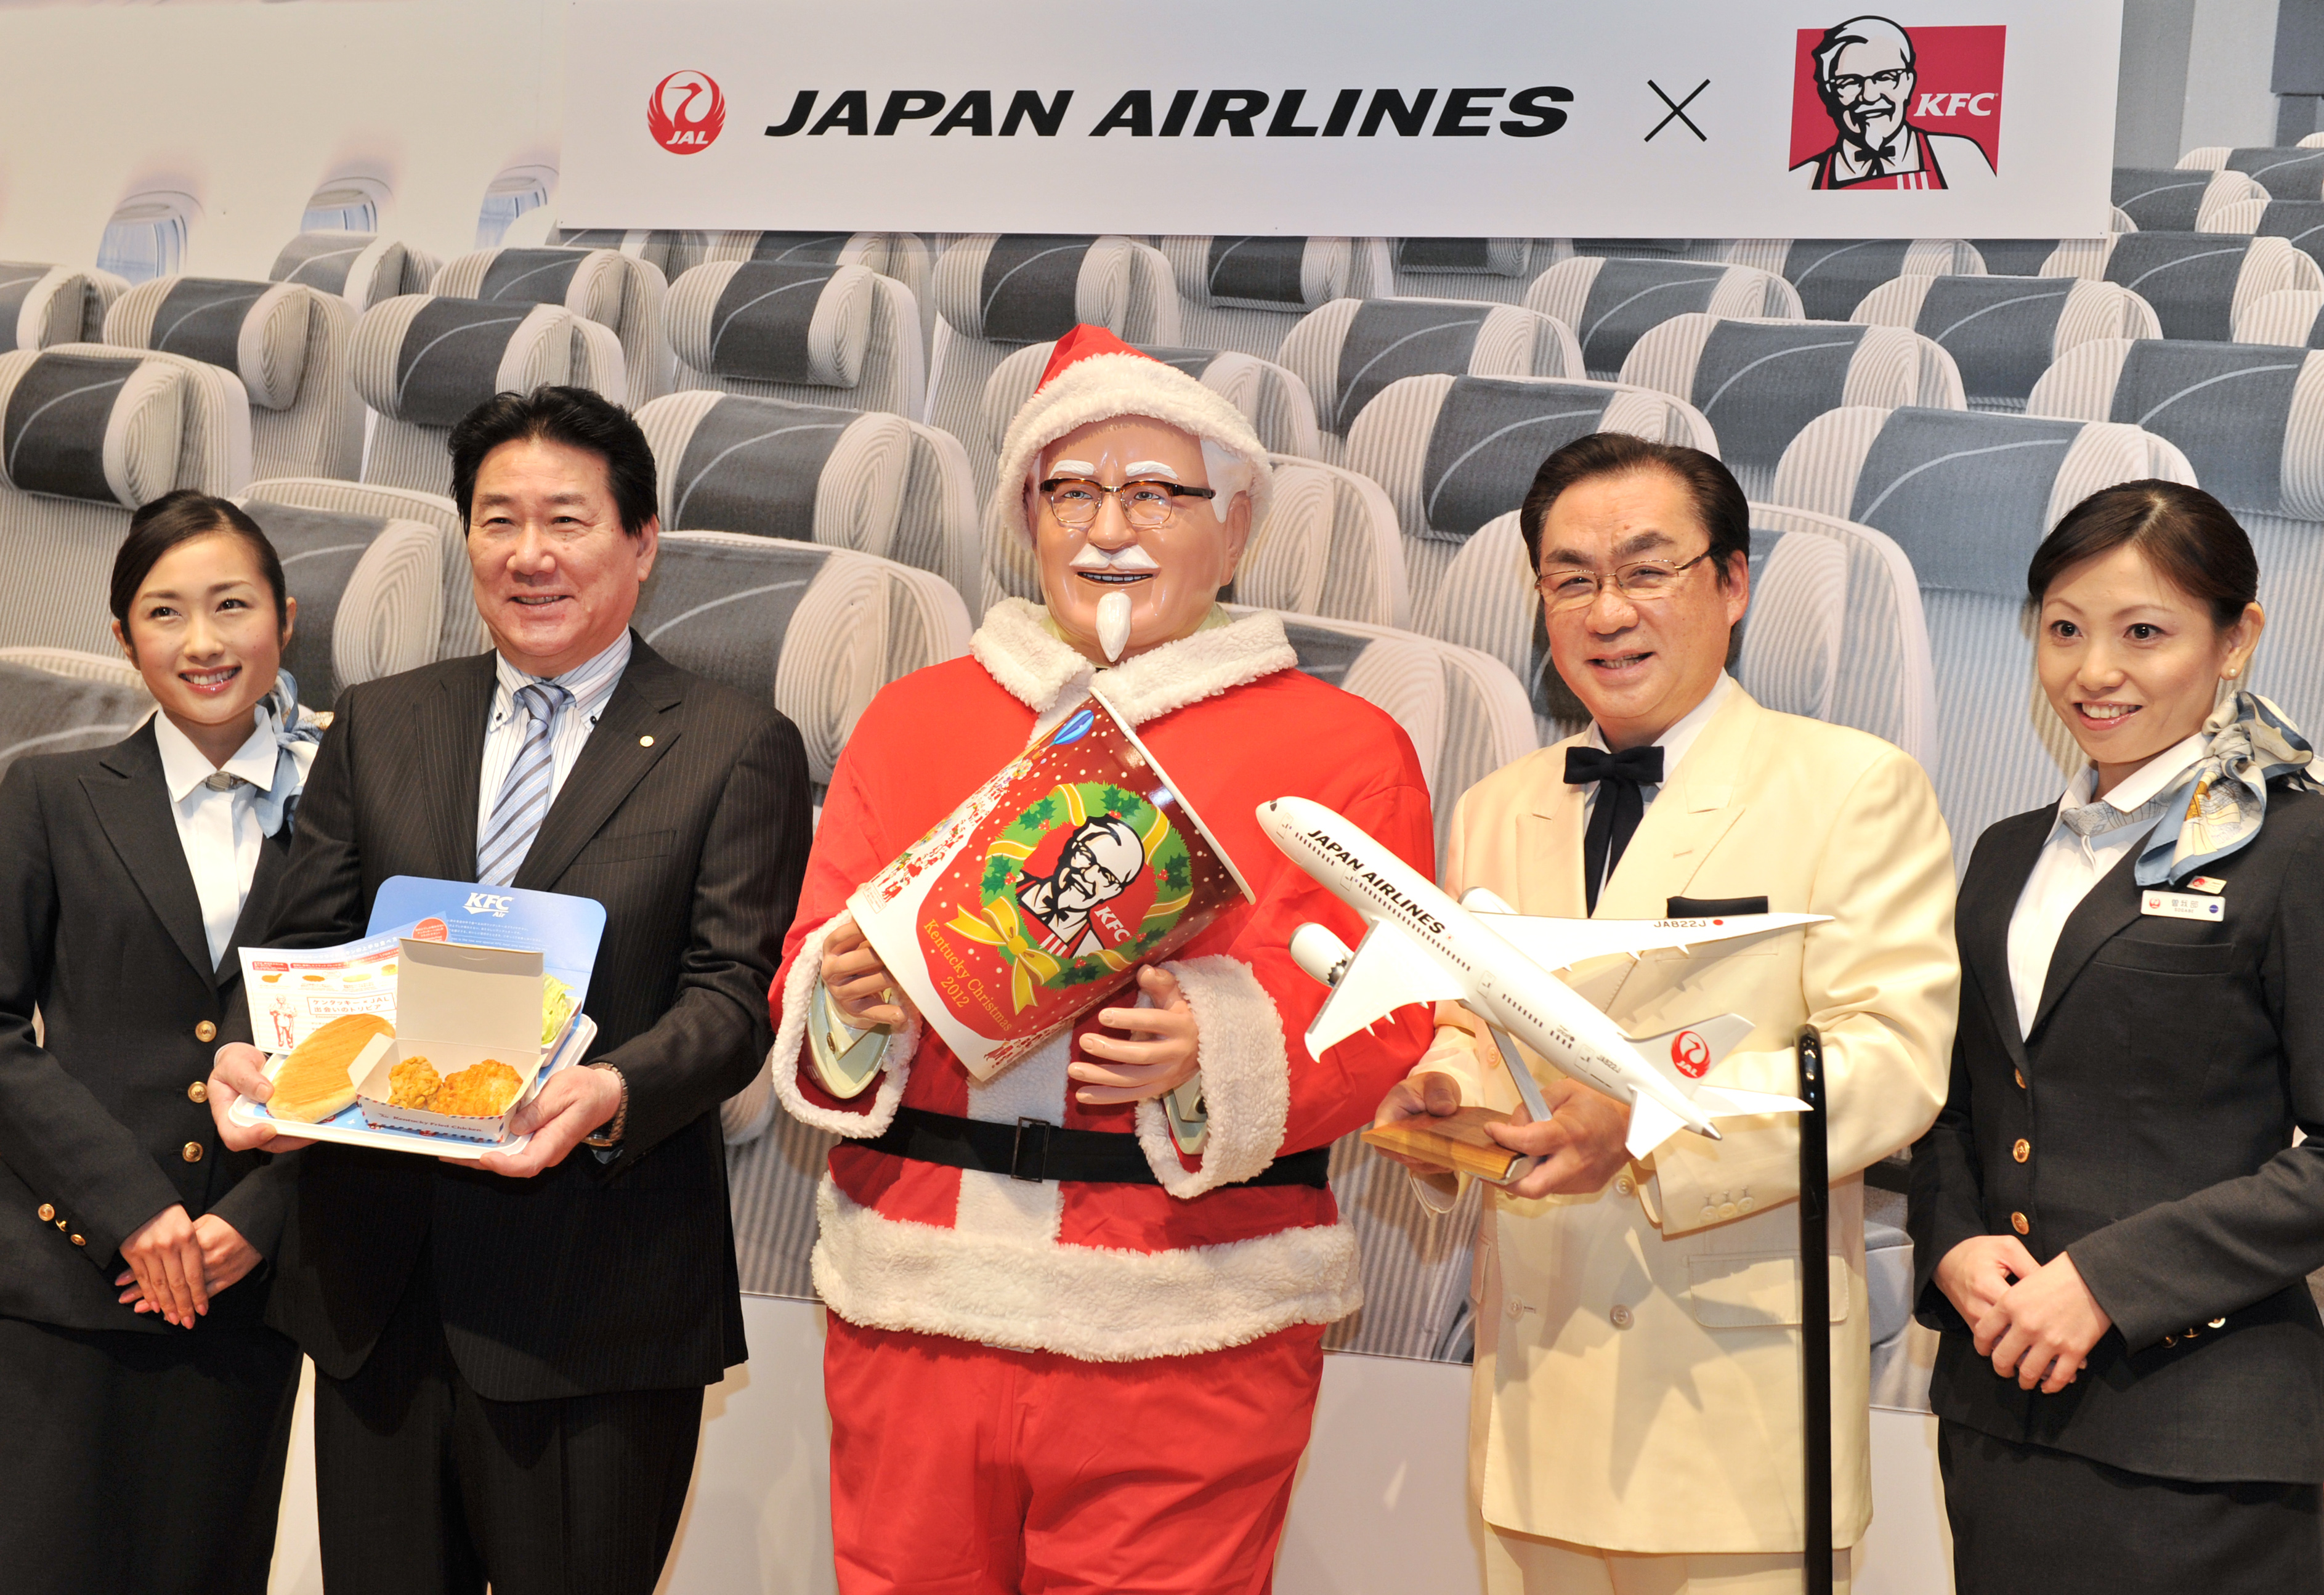 Japan Airlines President Yoshiharu Ueki (2nd L) and Masao Watanabe (2nd R), President of Kentucky Fried Chicken Japan pose with a statue of Colonel Sanders (C) wearing a Santa Claus costume during a photo session after a press conference to announce their new  AIR Kentucky Fried Chicken  in-flight fried chicken service, in Tokyo on November 28, 2012.